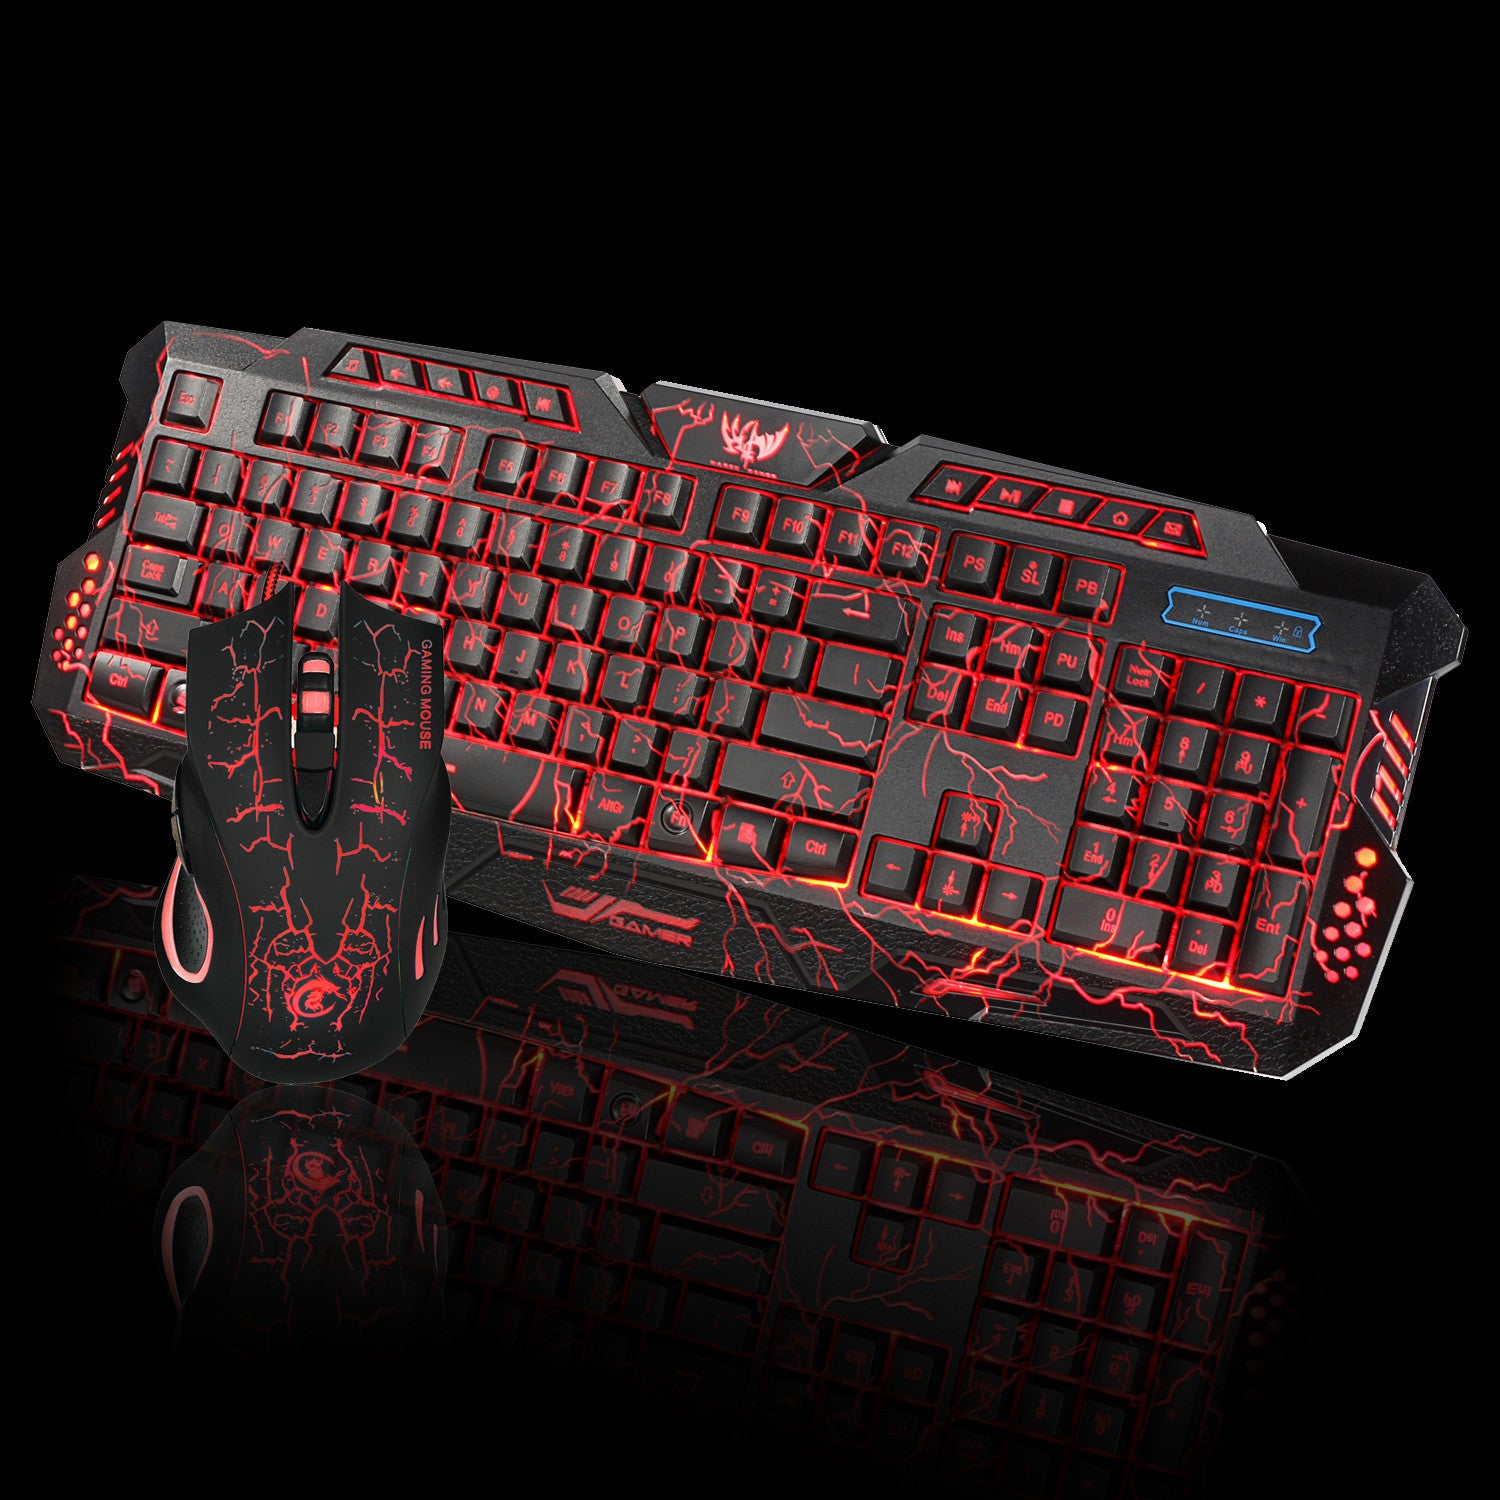 LED Gaming Wired 2.4G keyboard and Mouse Set for Computer Gamer